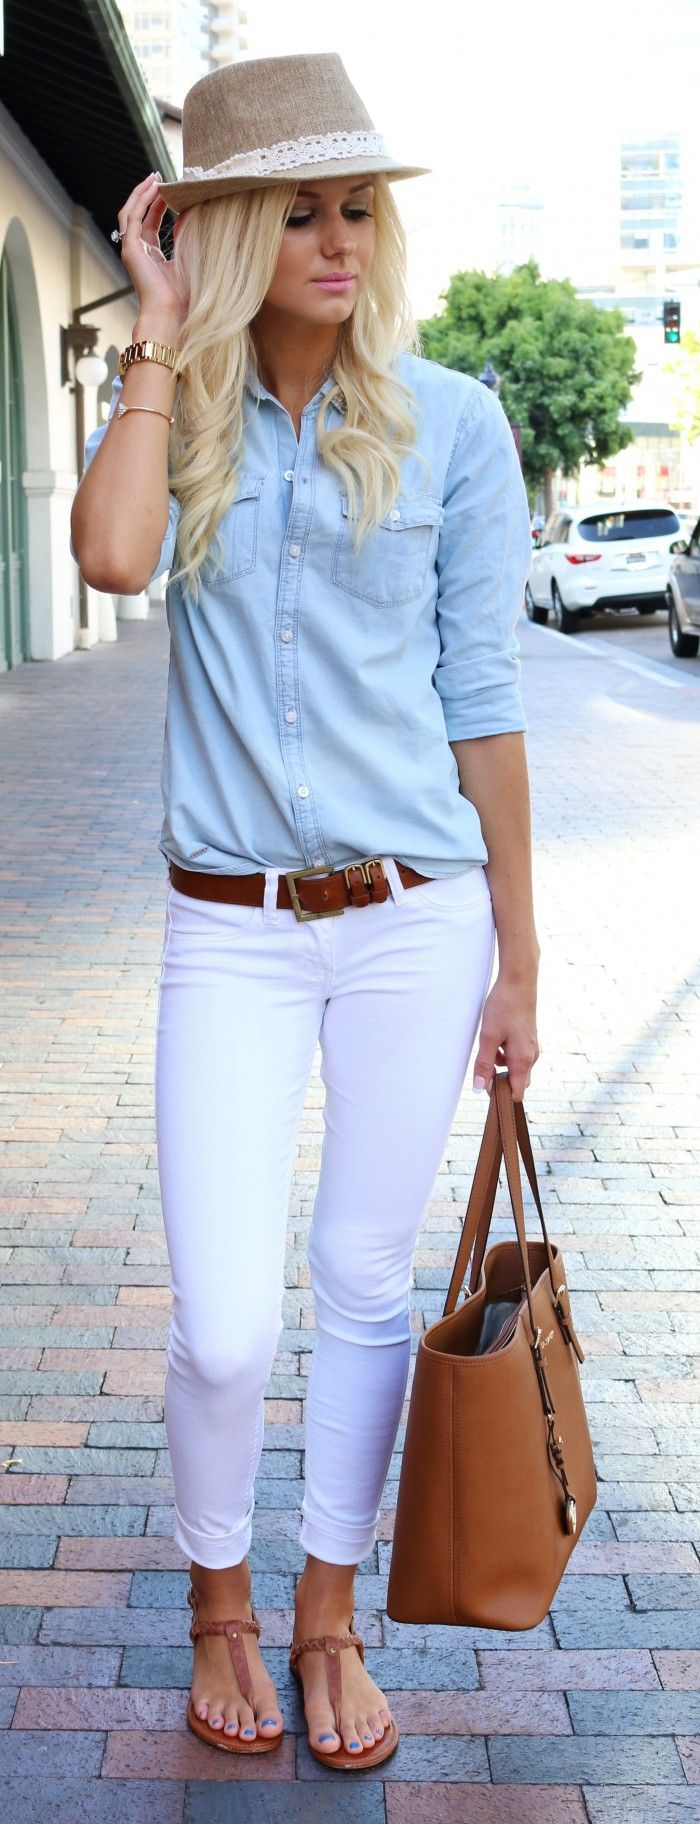 i've had a hard time finding chambray shirts that aren't too boxy. would love a fitted one